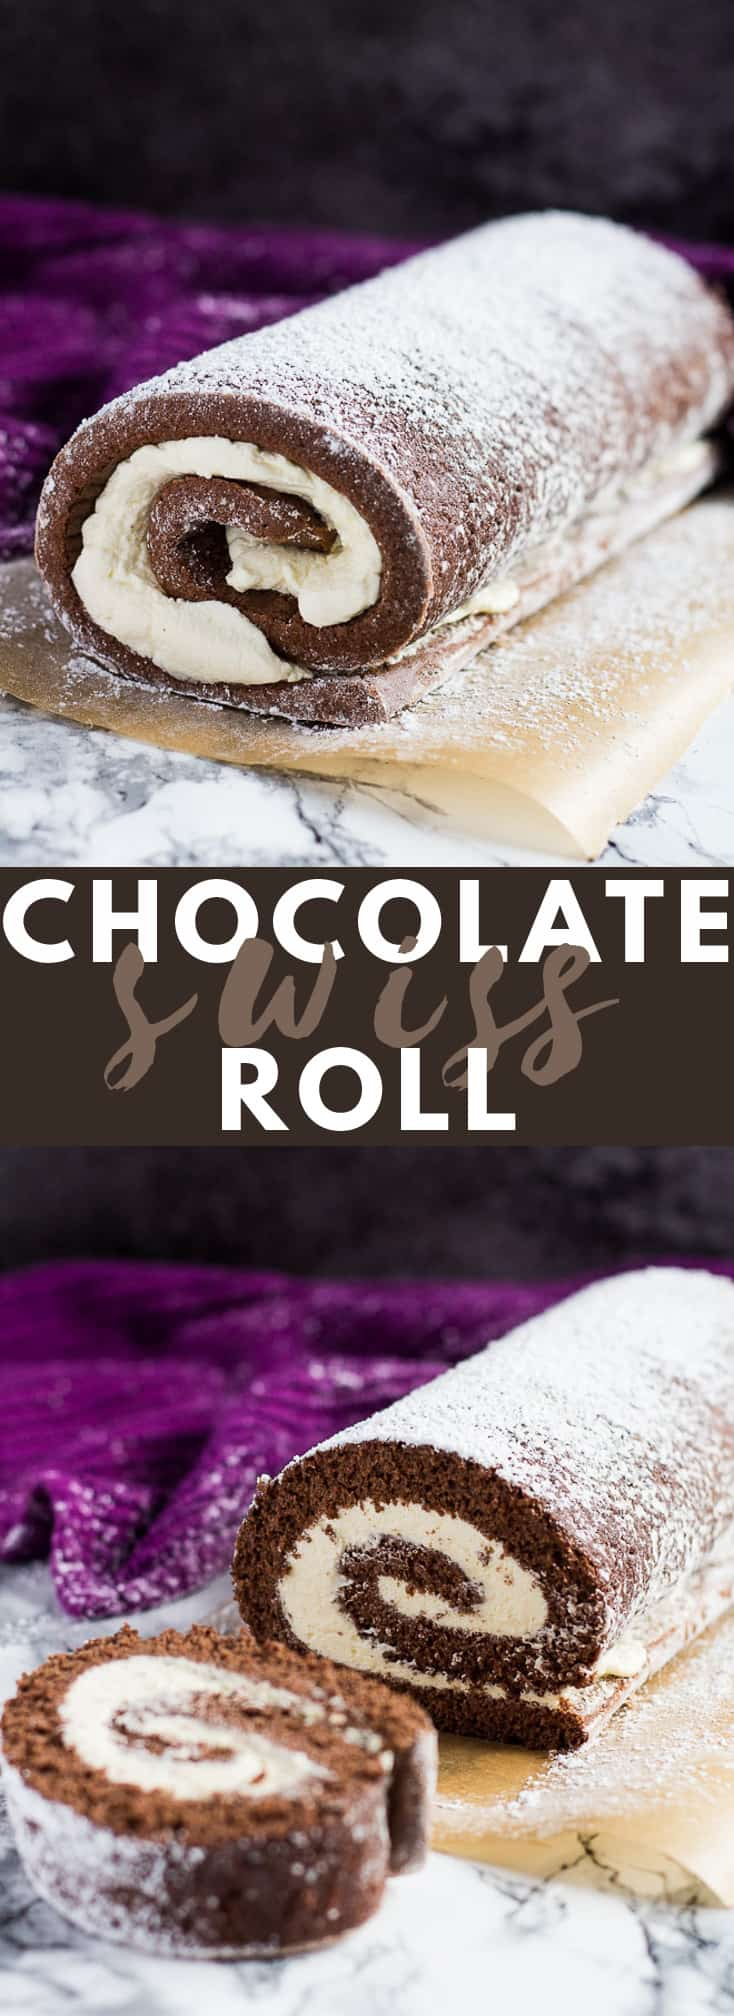 Chocolate Swiss Roll- Deliciously moist and fluffy cake filled with a thick layer of vanilla whipped cream and dusted with icing sugar! #chocolateswissroll #swissrollrecipes #chocolaterecipes #cakerecipes